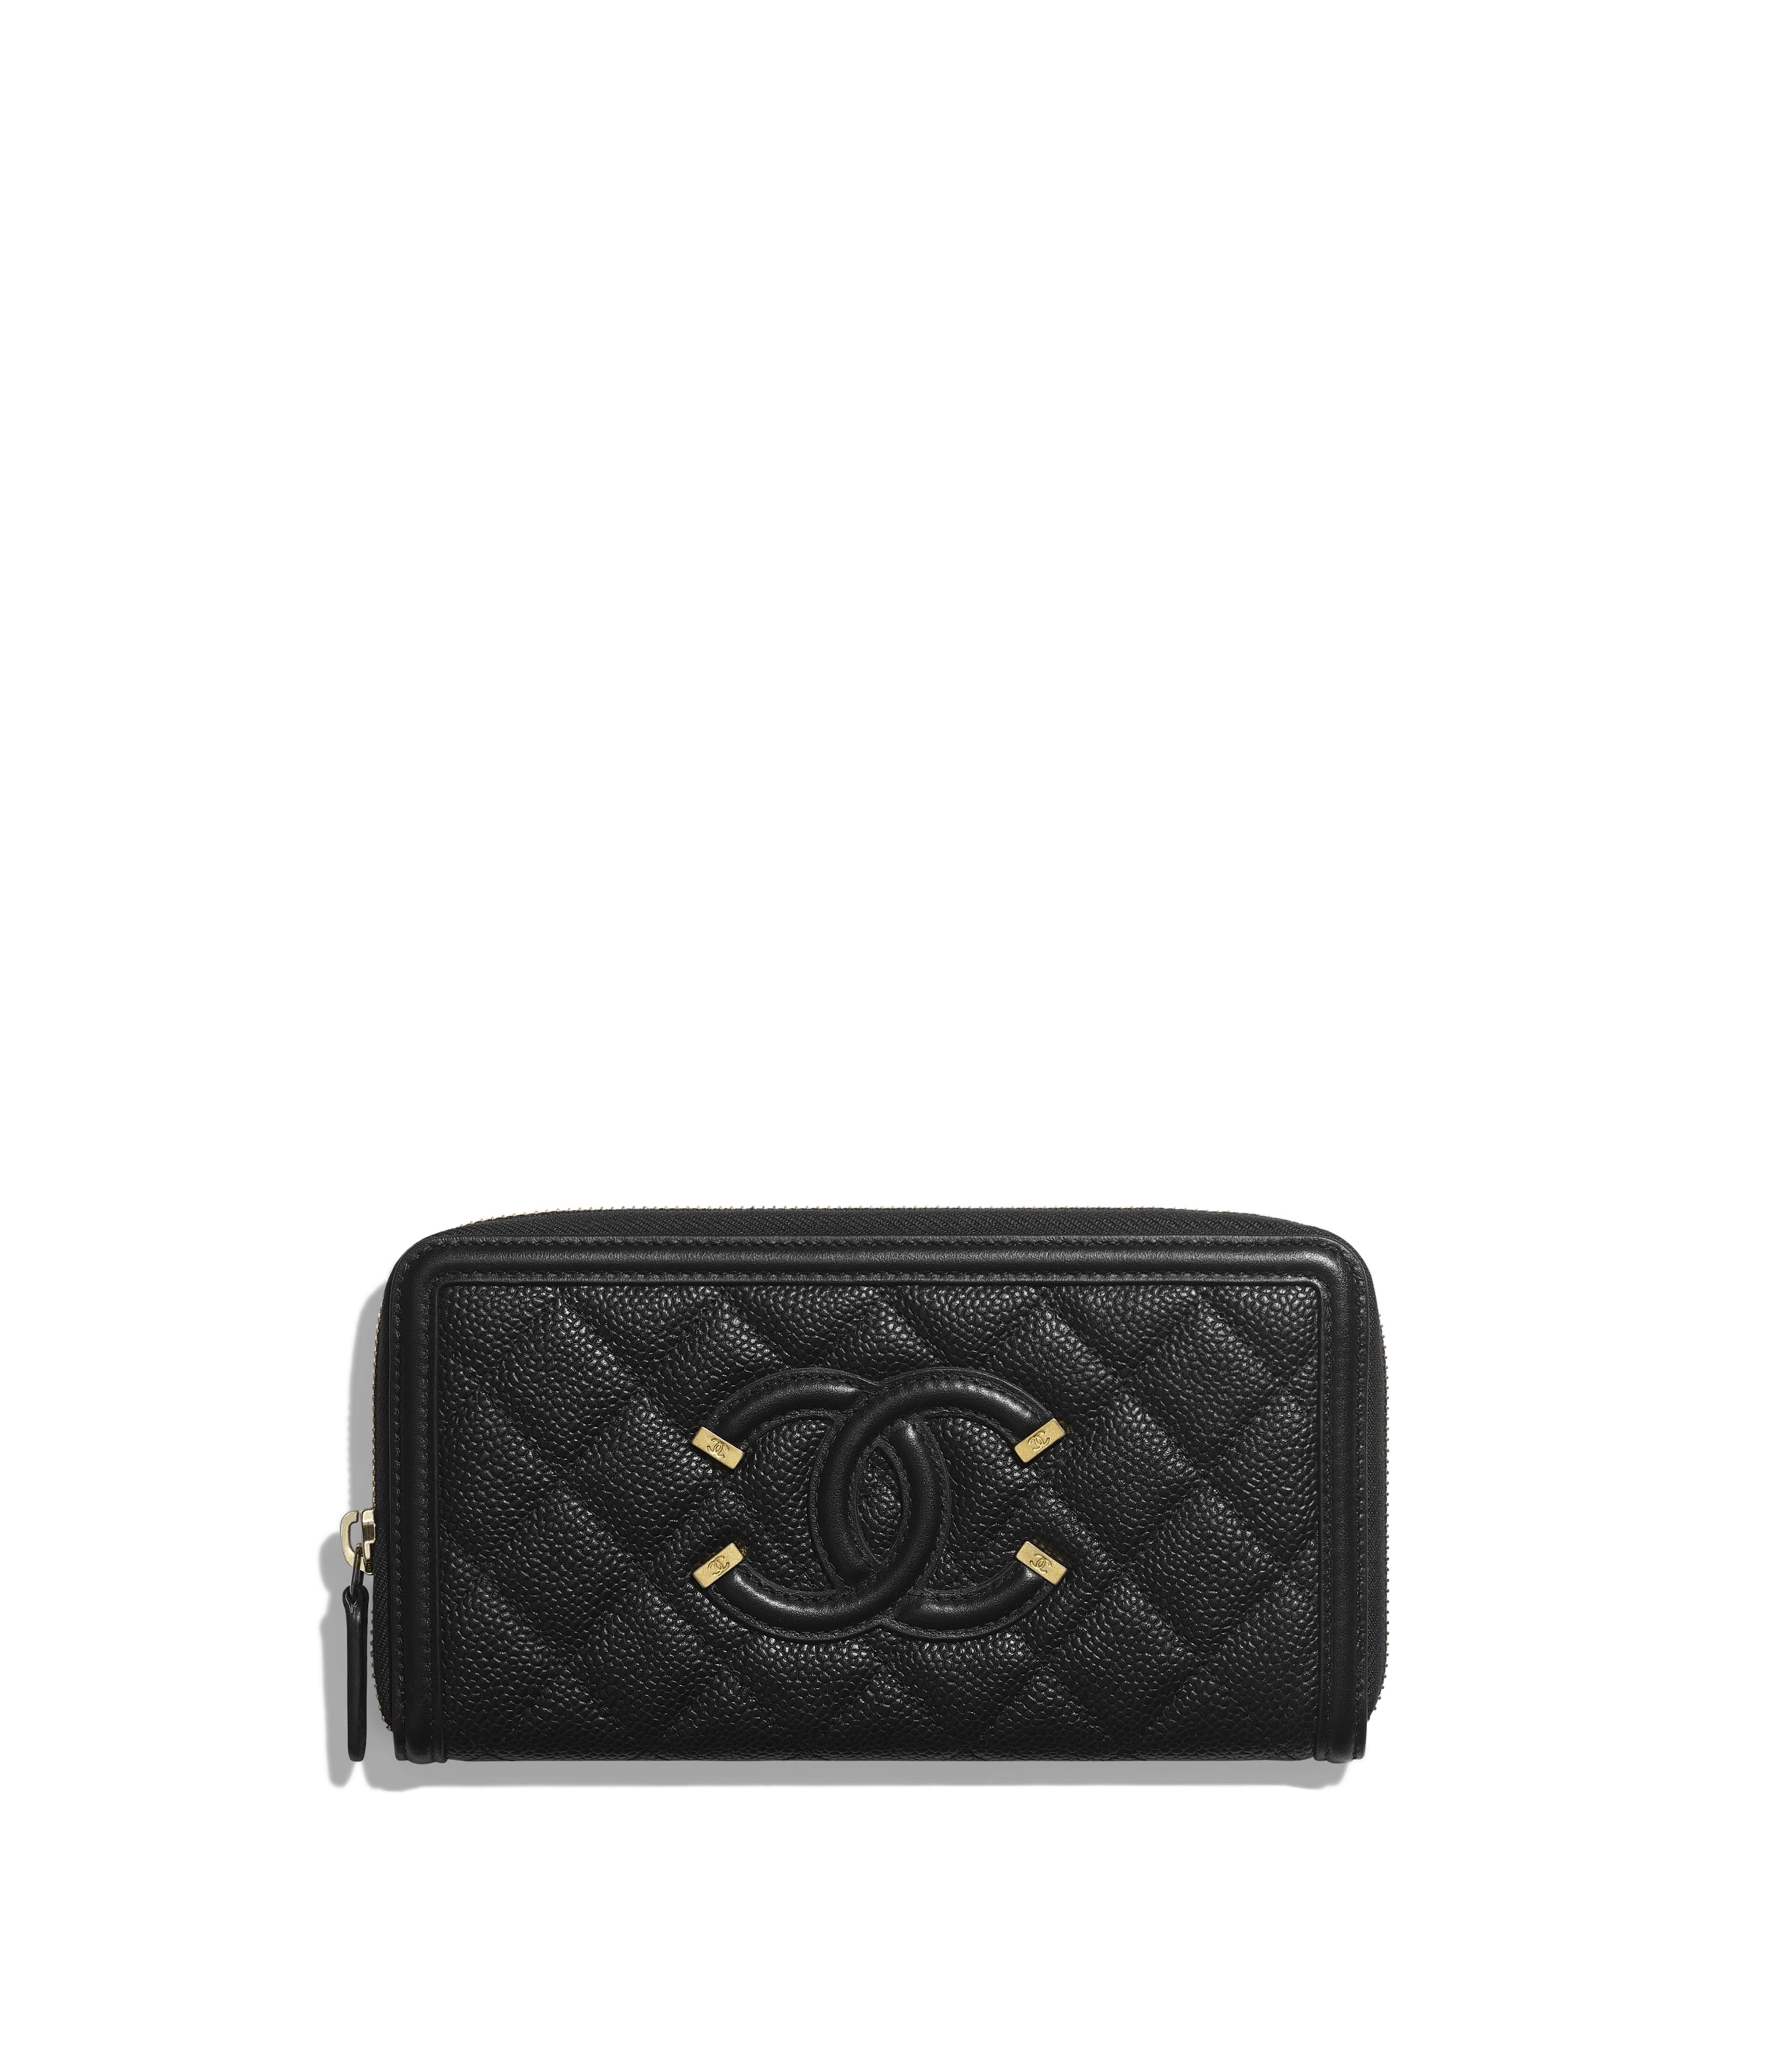 75f0997b4b44 Long Zipped Wallet Grained Calfskin, Smooth Calfskin & Gold-Tone Metal,  Black Ref. A84449Y6054294305